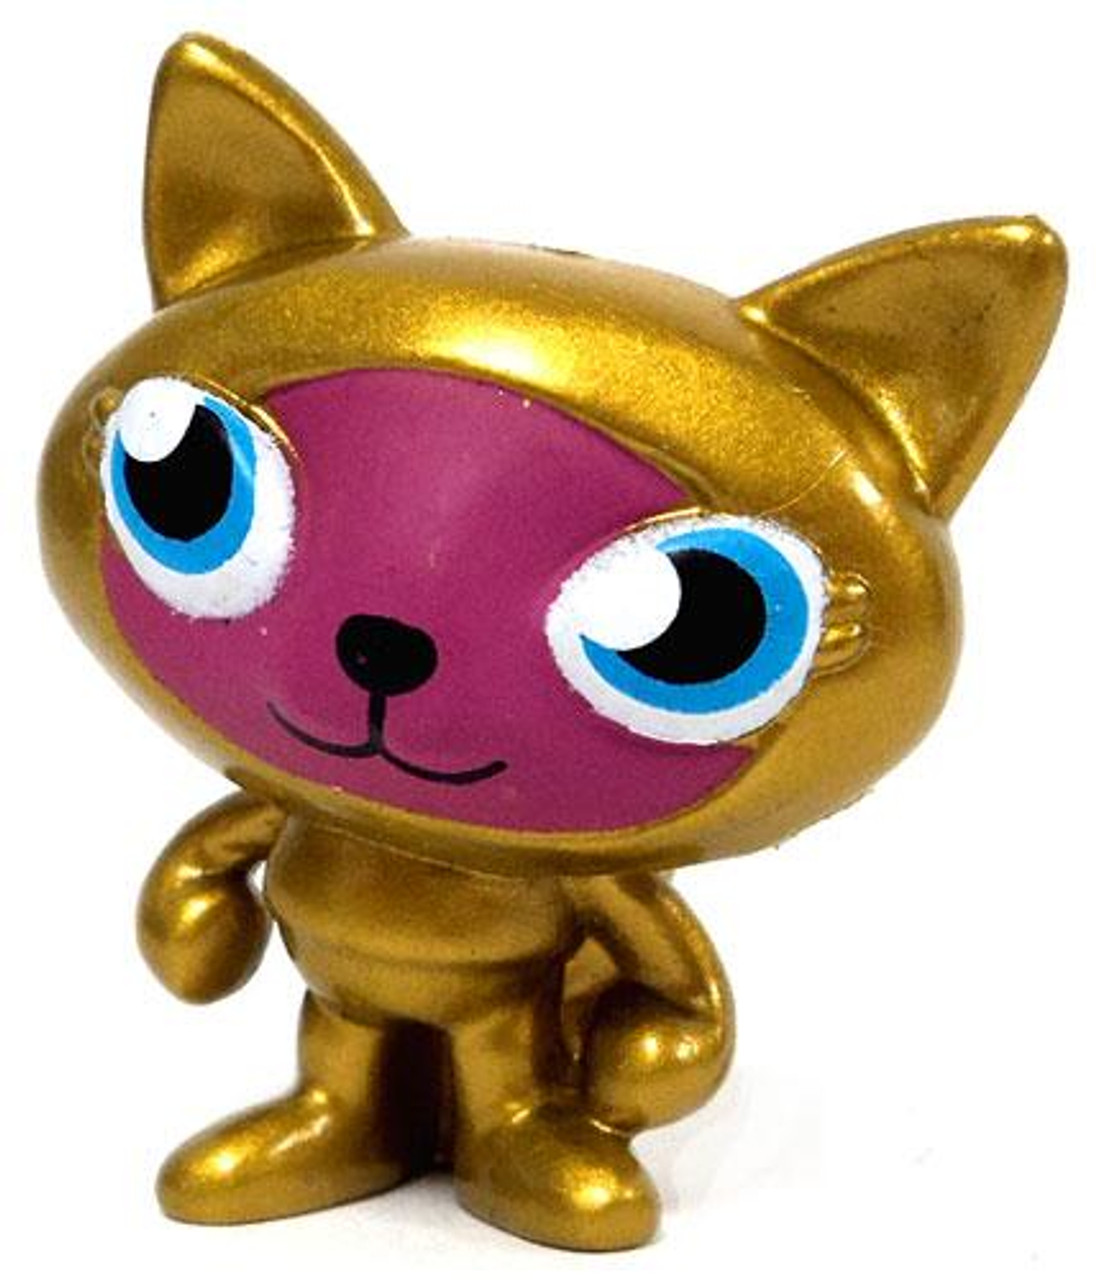 Moshi Monsters Moshlings Gold Limited Edition Sooki-Yaki 1.5-Inch Mini Figure